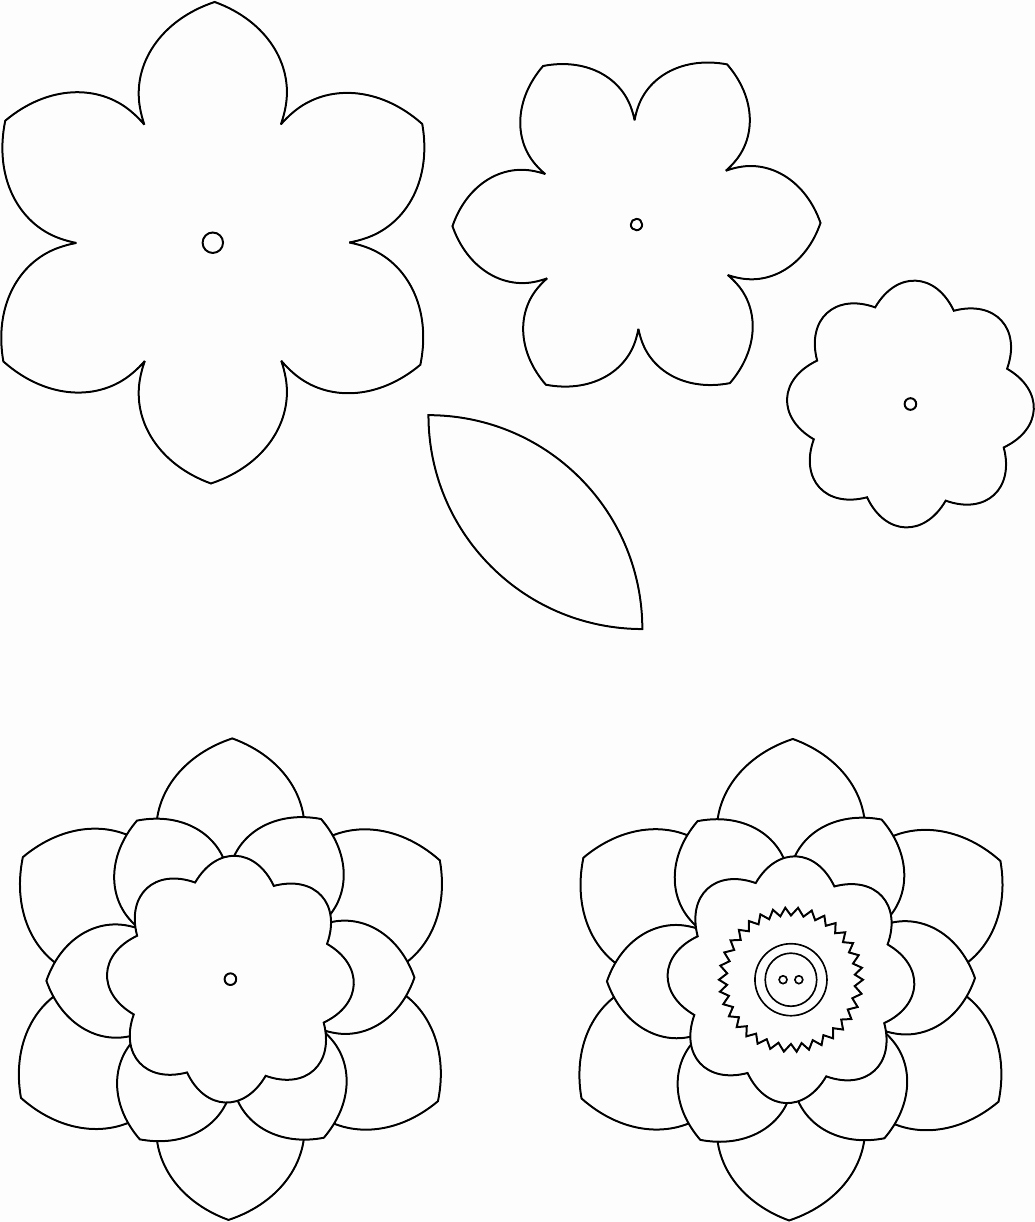 Printable Paper Flower Templates Awesome Flower Template 1 трафареты цветы Pinterest